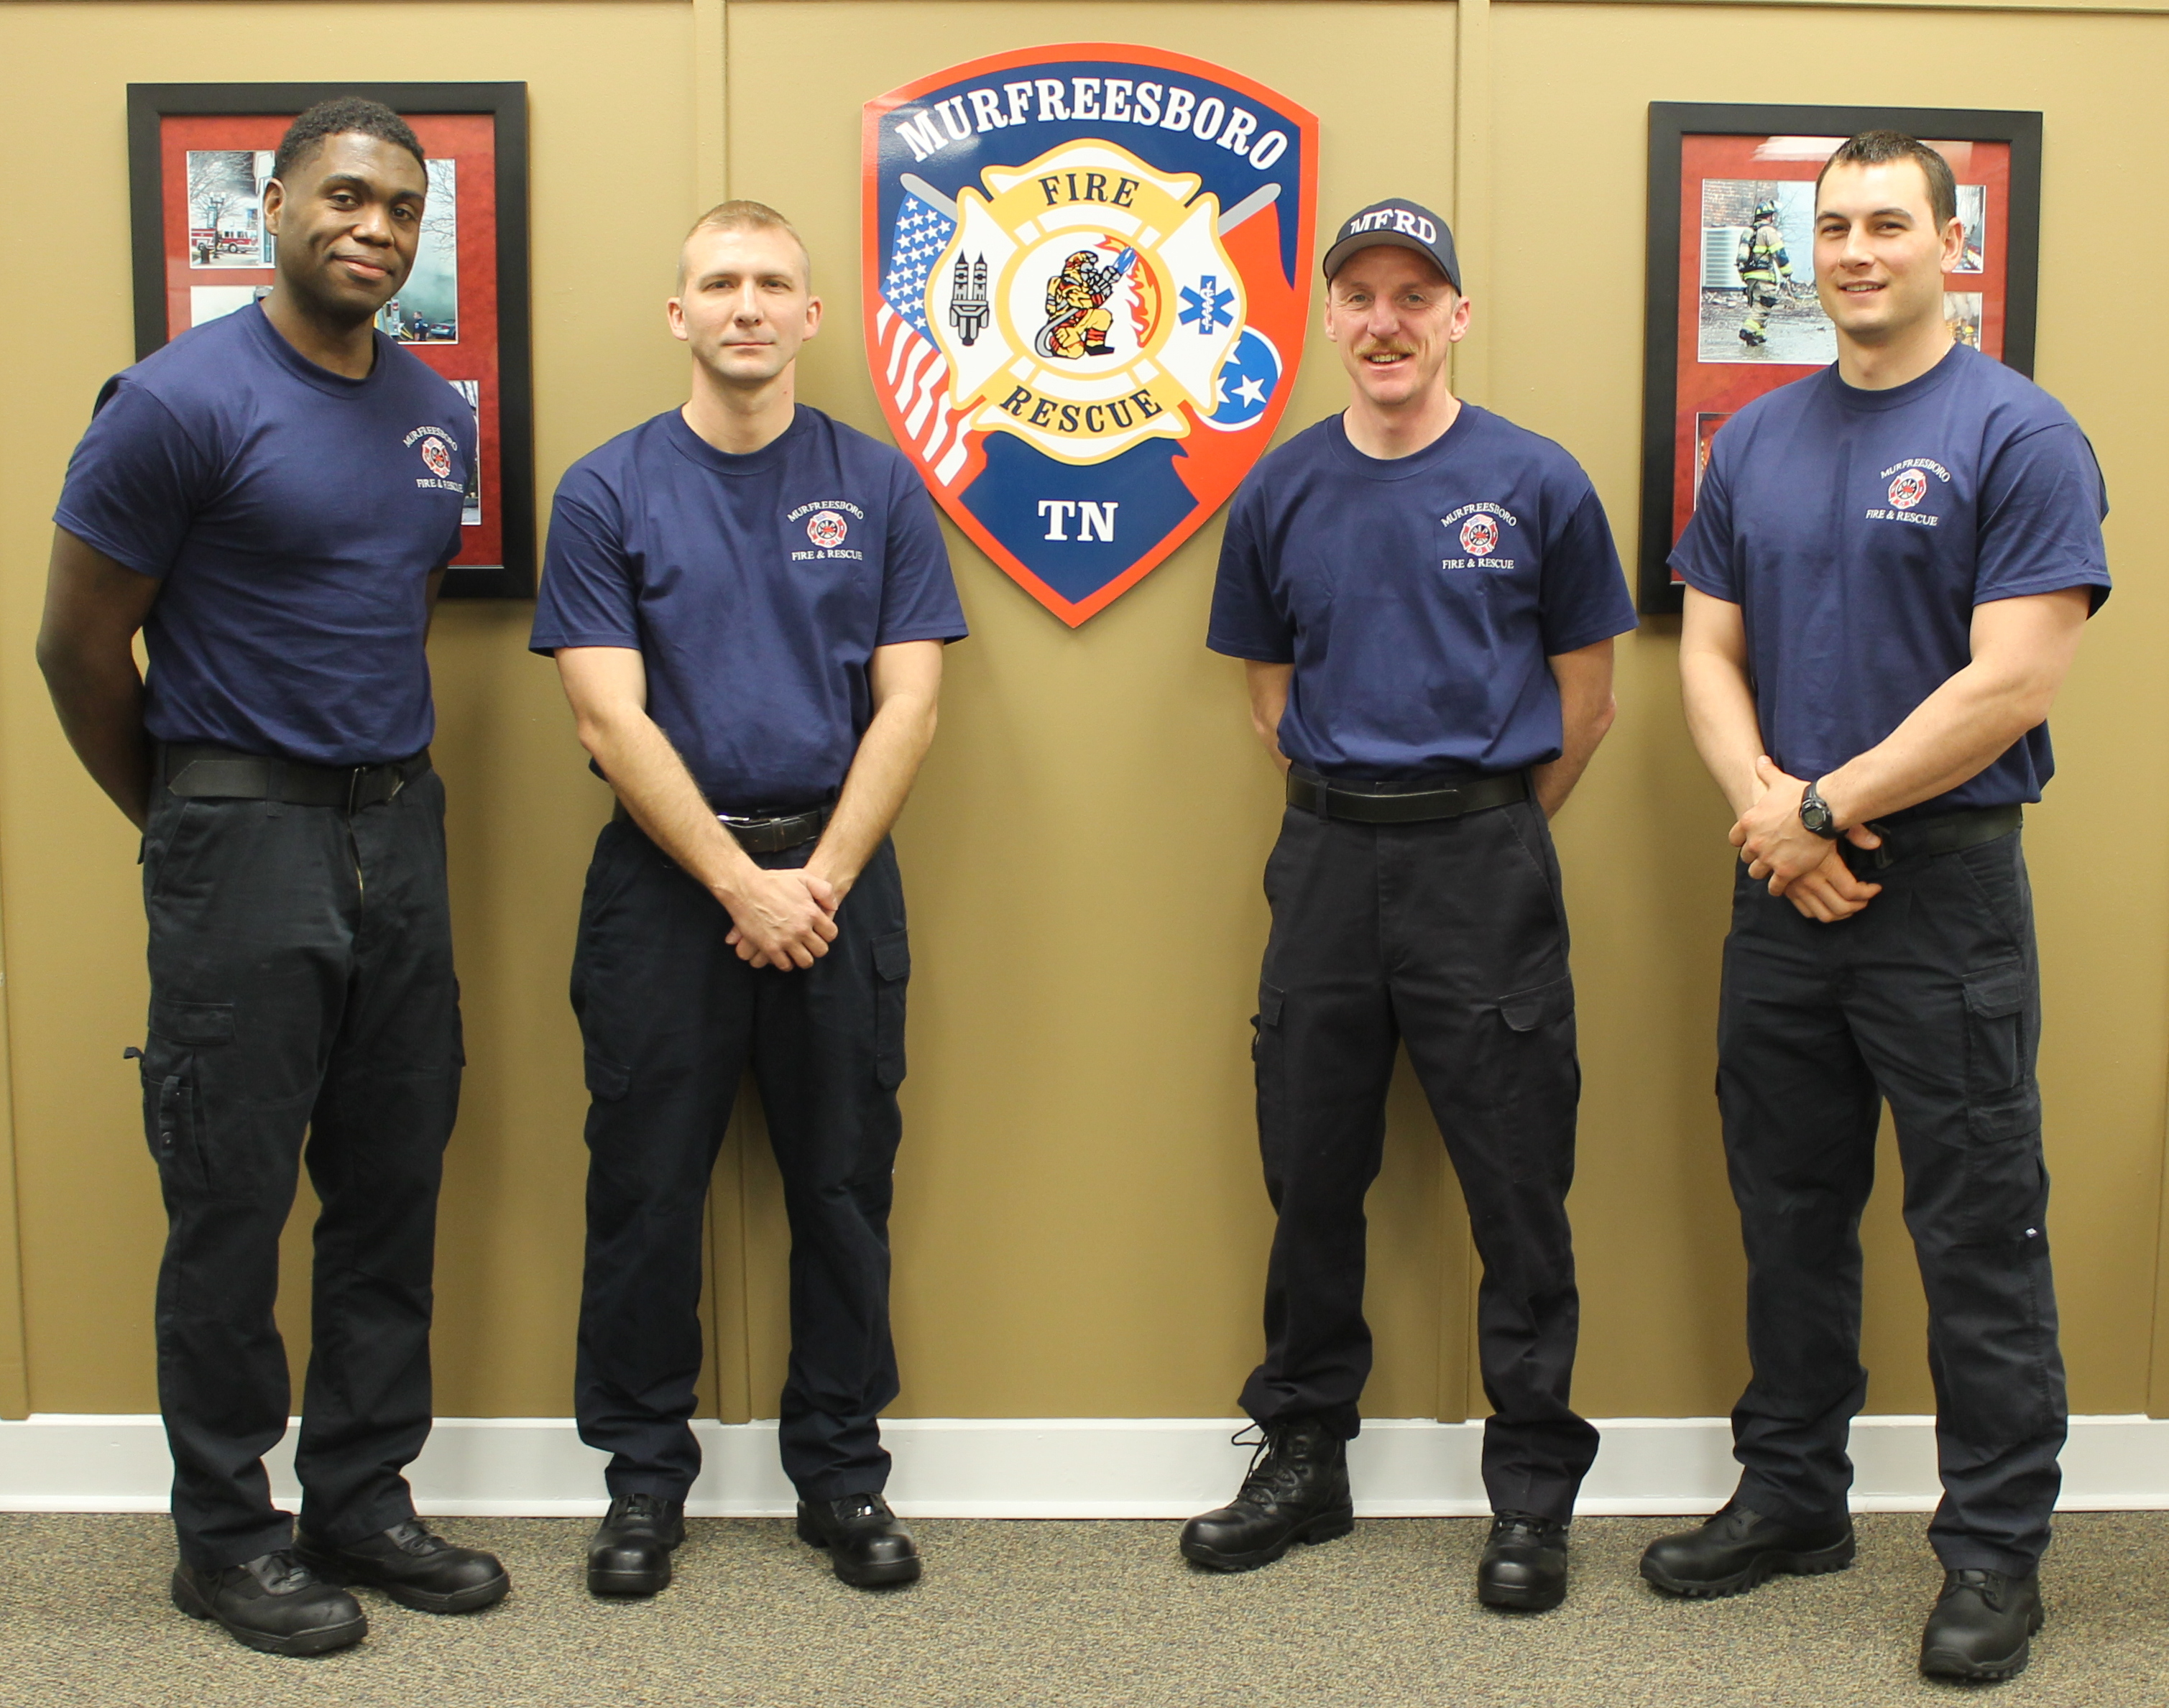 Welcome four NEW firefighters to Murfreesboro | Murfreesboro fire, Fire Department, Murfreesboro news, Corian Barrett, Jason Bonniger, Marcus Cartwright, Eric Compton